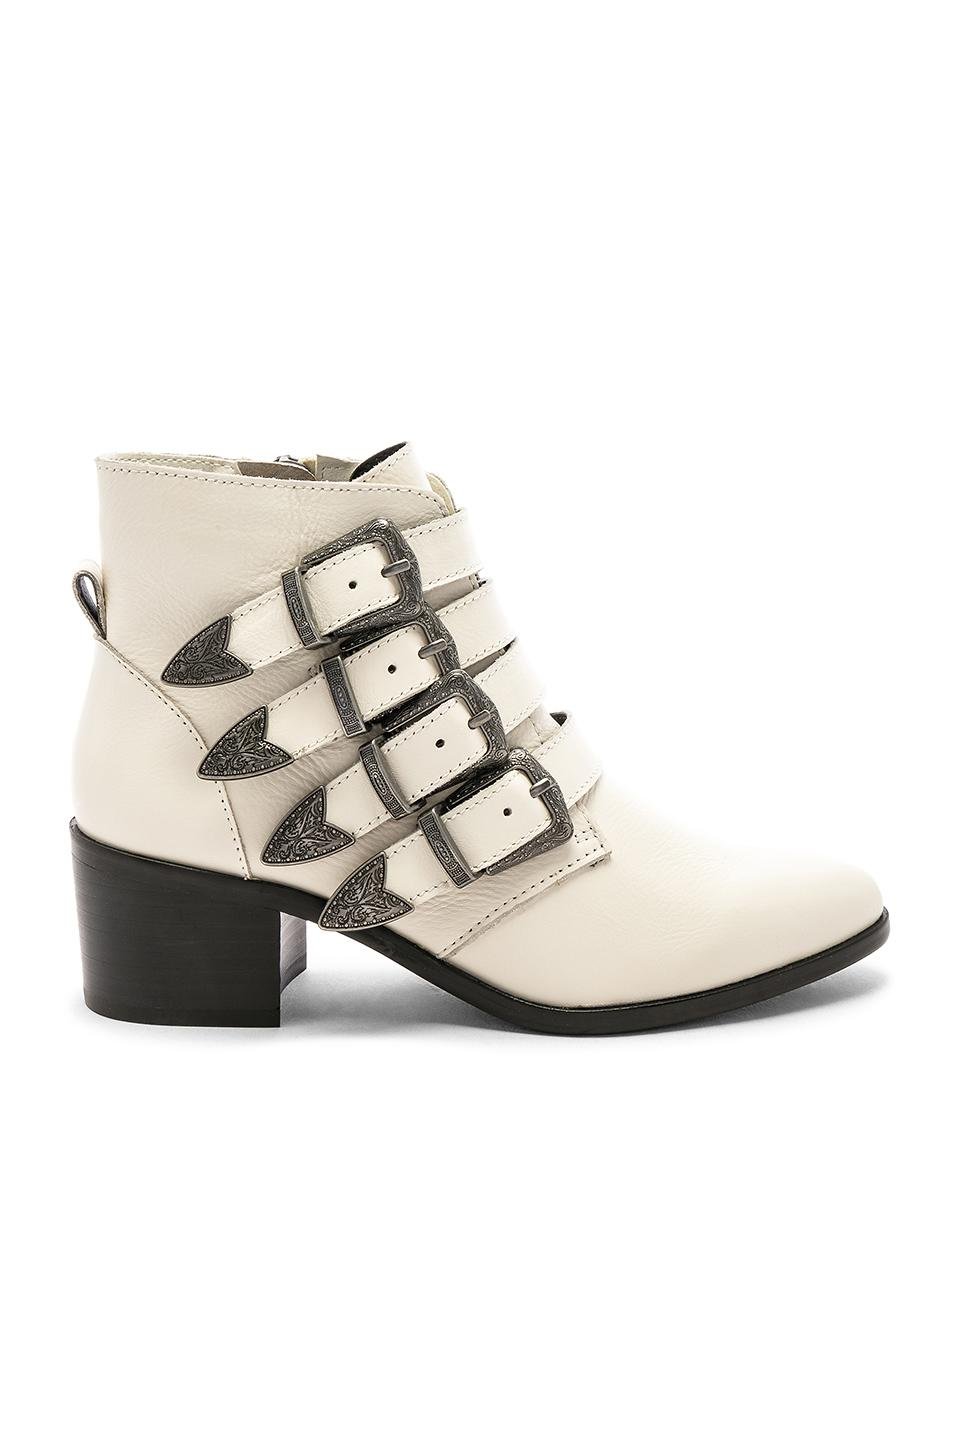 b096021e16a Lyst - Steve Madden Billey Bootie in White - Save 62%